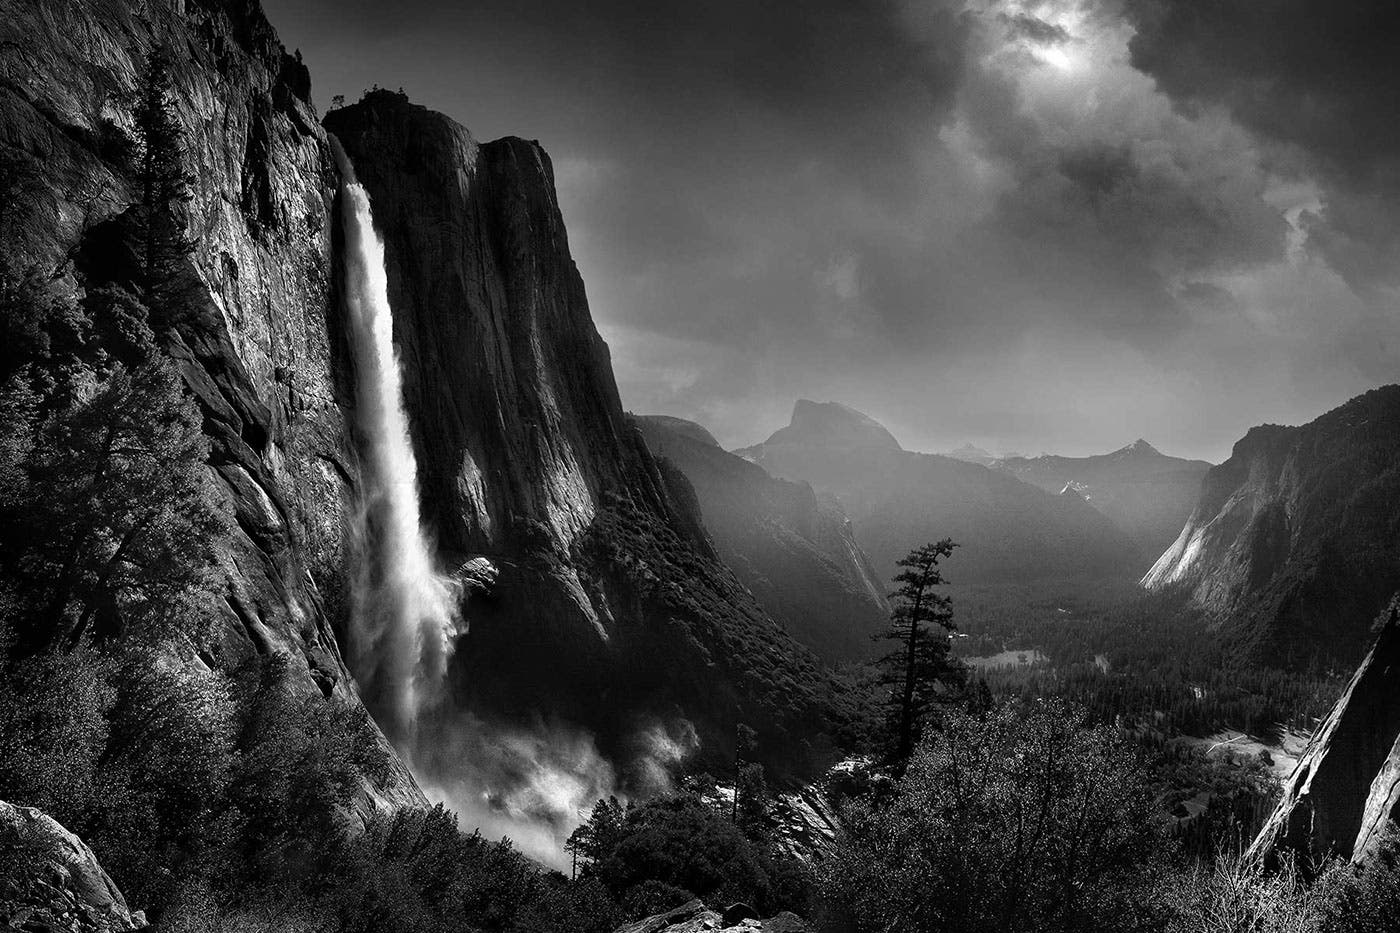 Chris Clor Captures the Beauty of the Outdoors in Punchy Monochromes